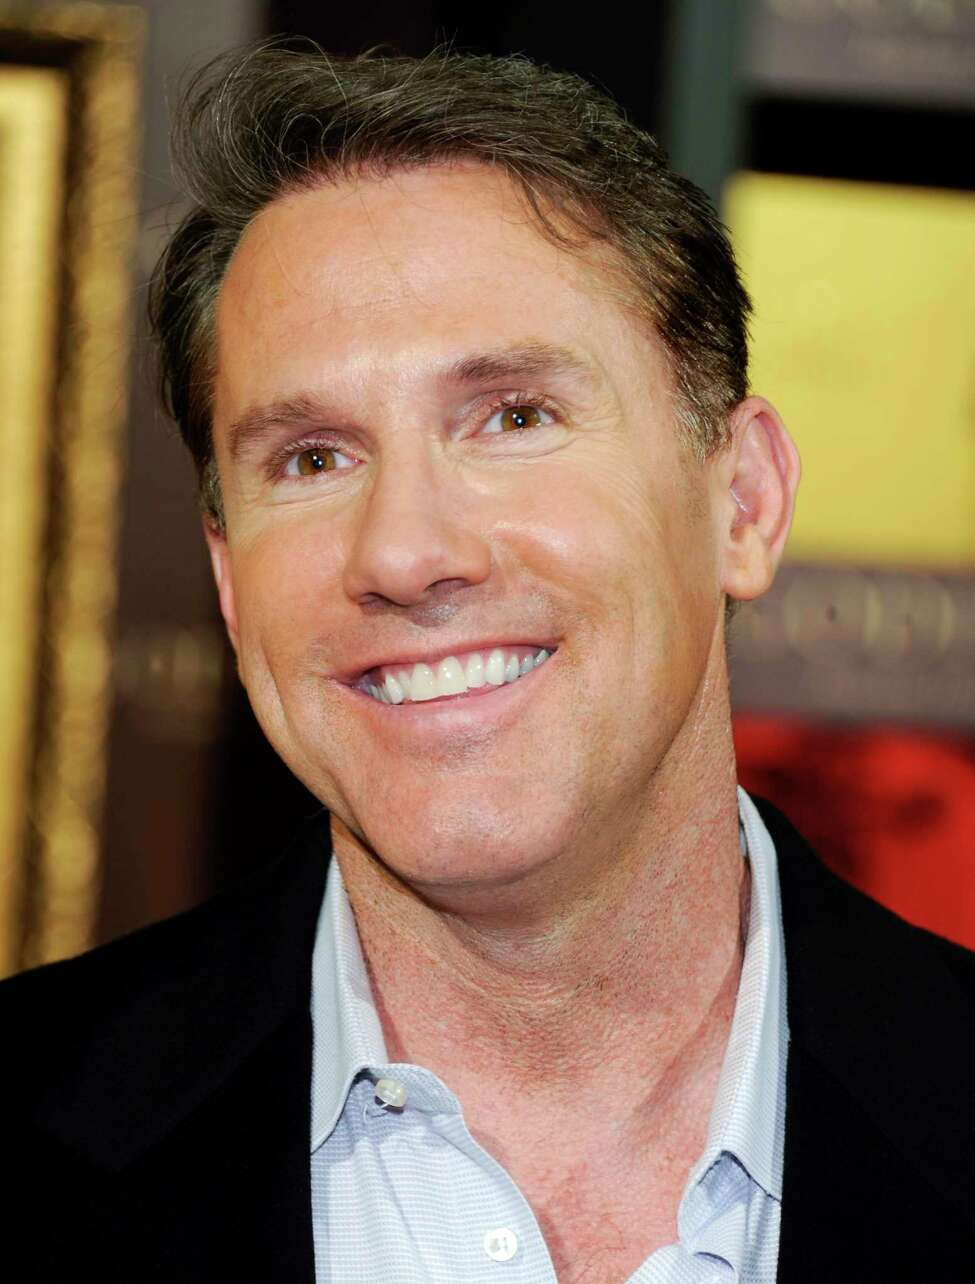 File- This Feb. 1, 2012 file photo shows author Nicholas Sparks as he participates in announcing Godiva's Valentine's Day